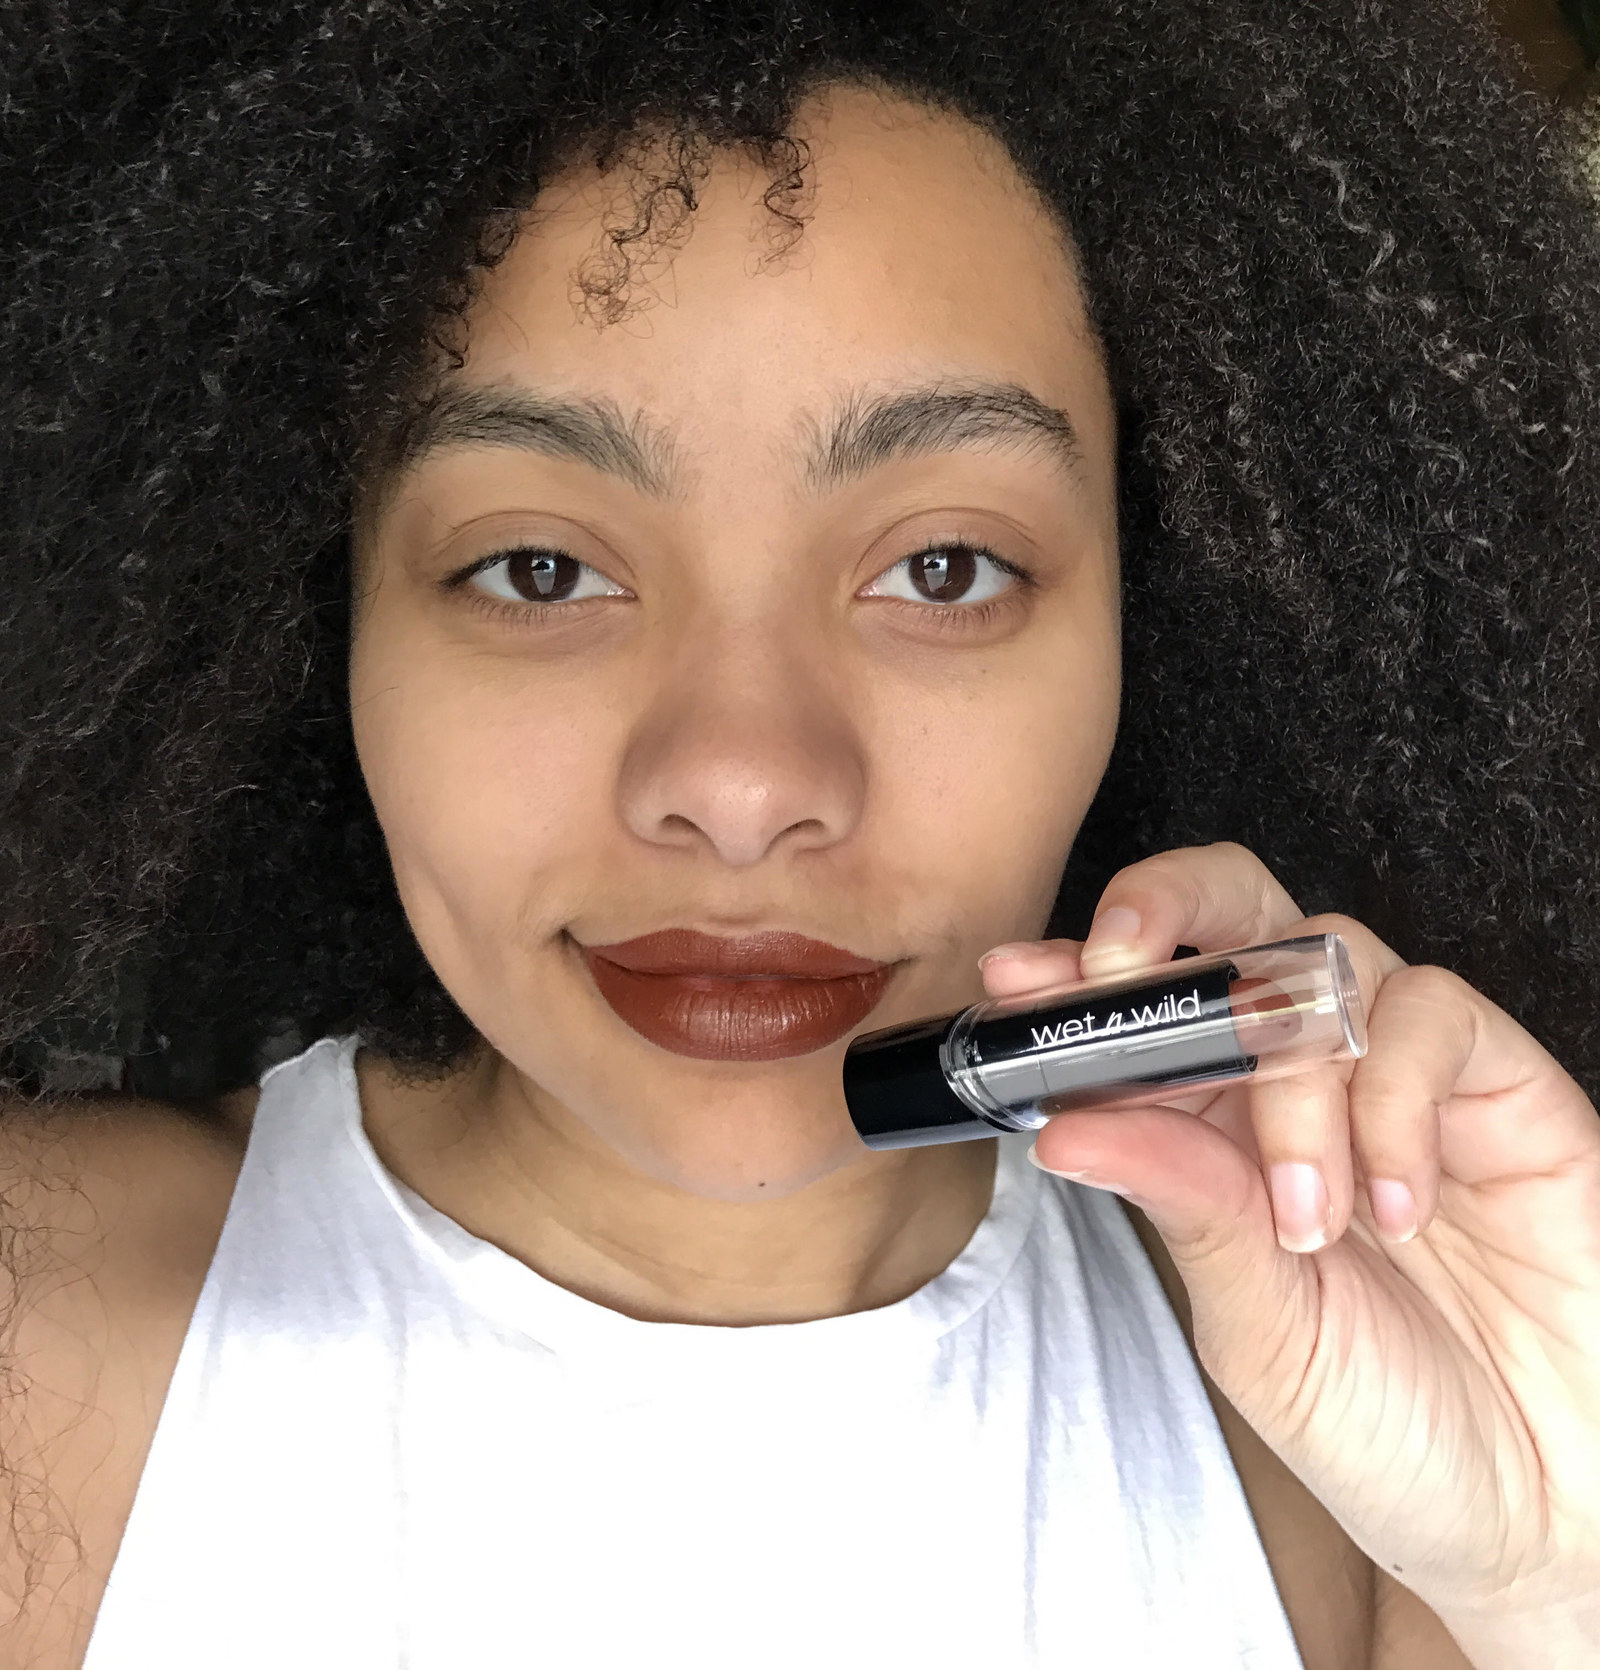 A person holding a tube of the wet n wild lipstick by their mouth